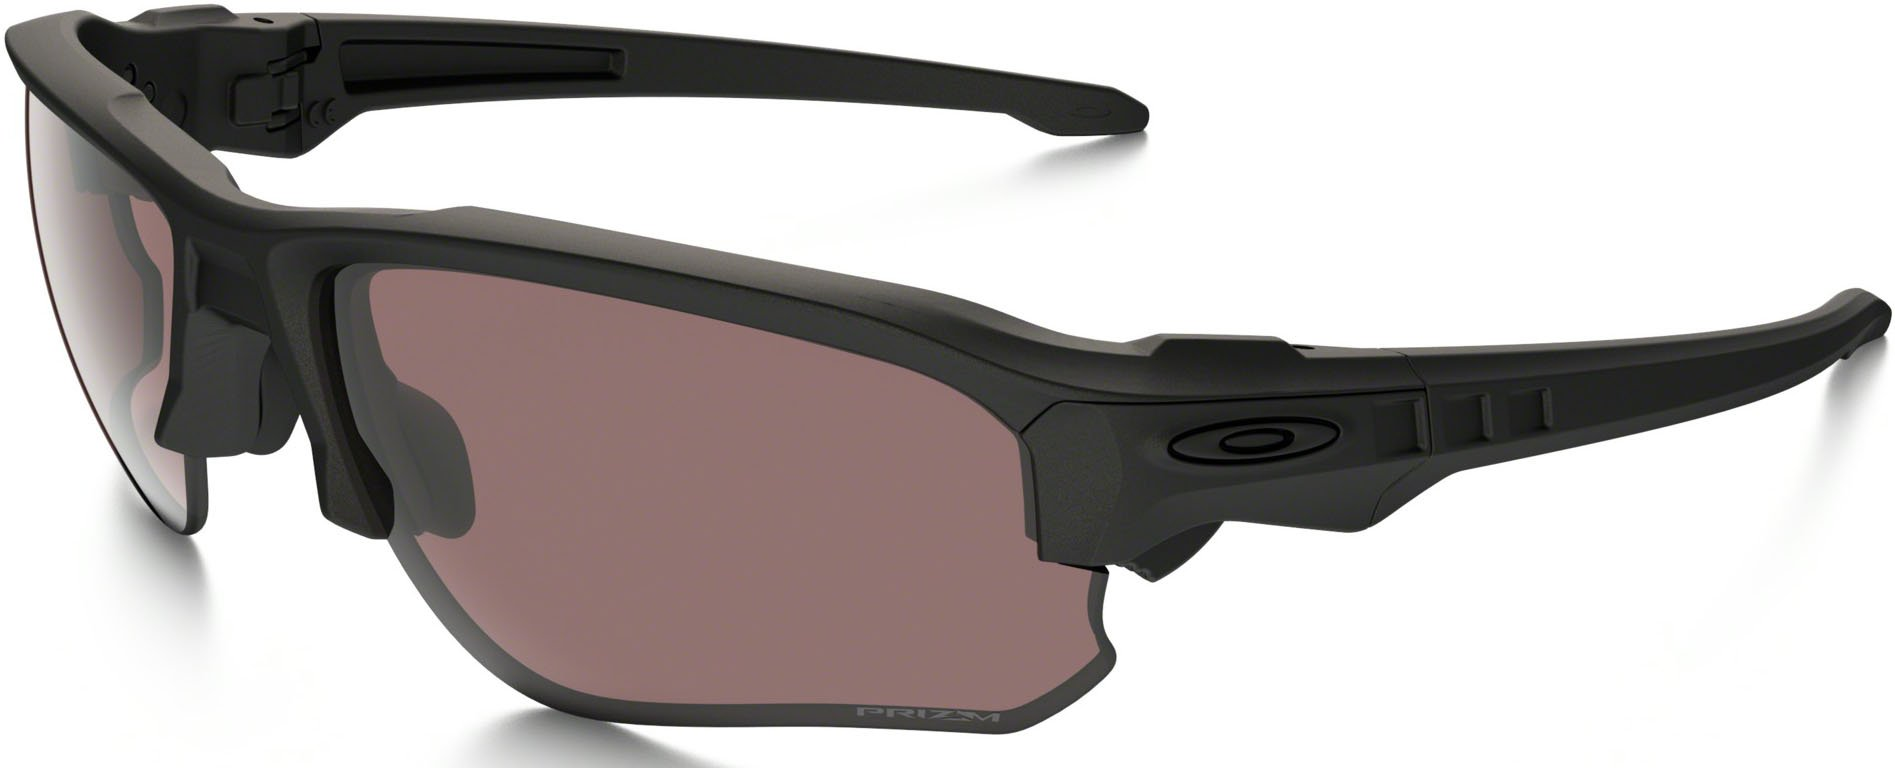 Oakley - Speed Jacket - Matte Black Frame-Tr22 Lenses by Oakley